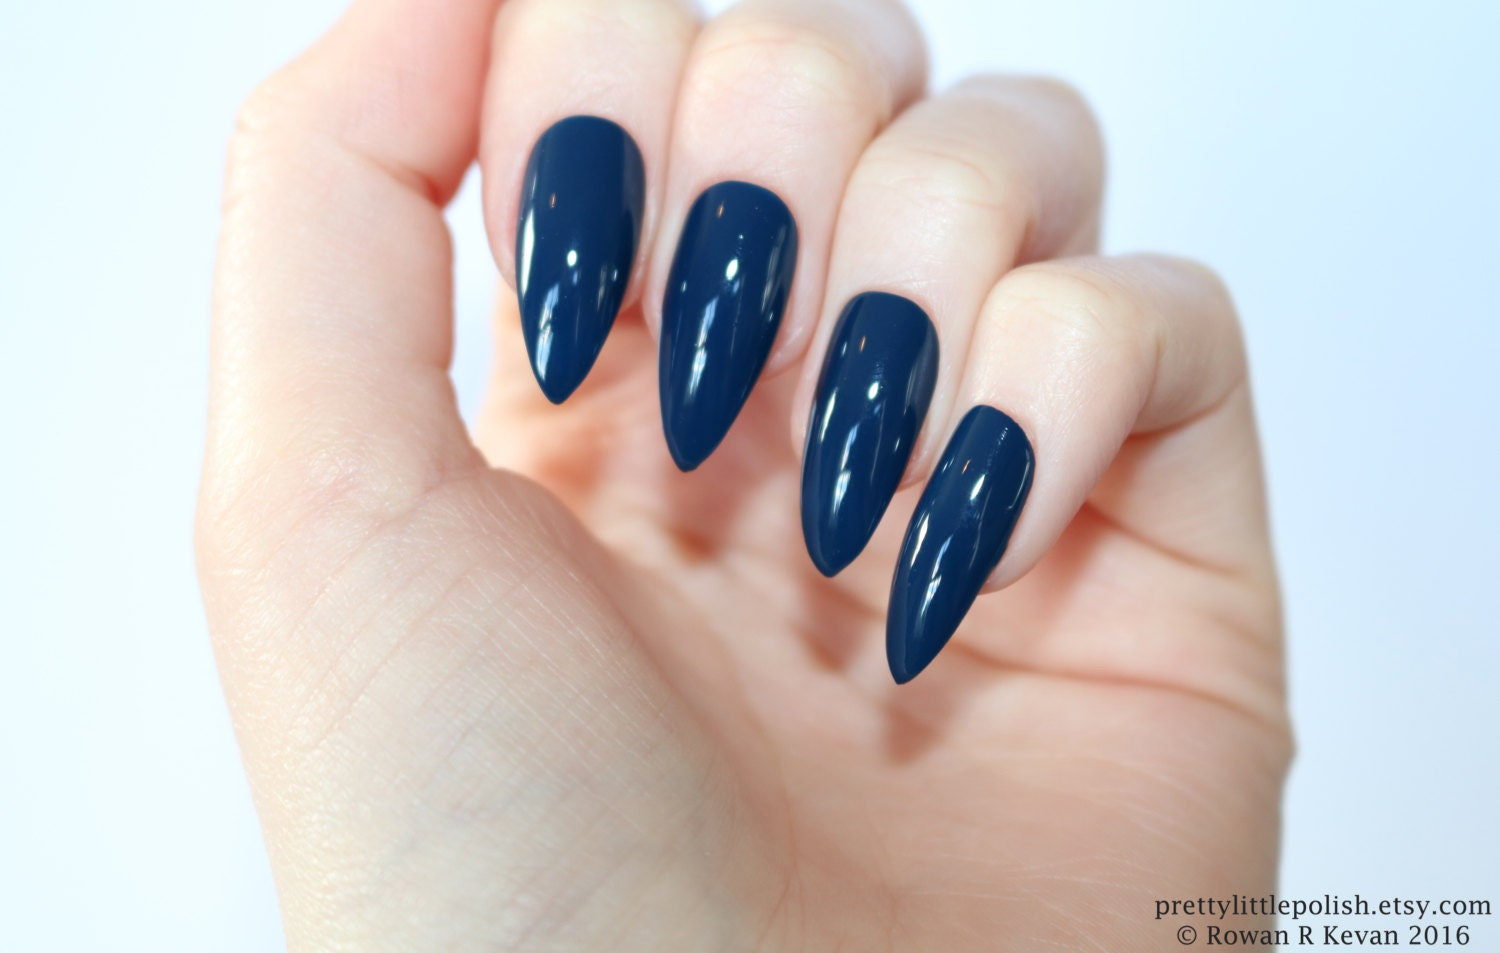 Stiletto nails Dark blue stiletto nails Fake nails Press on